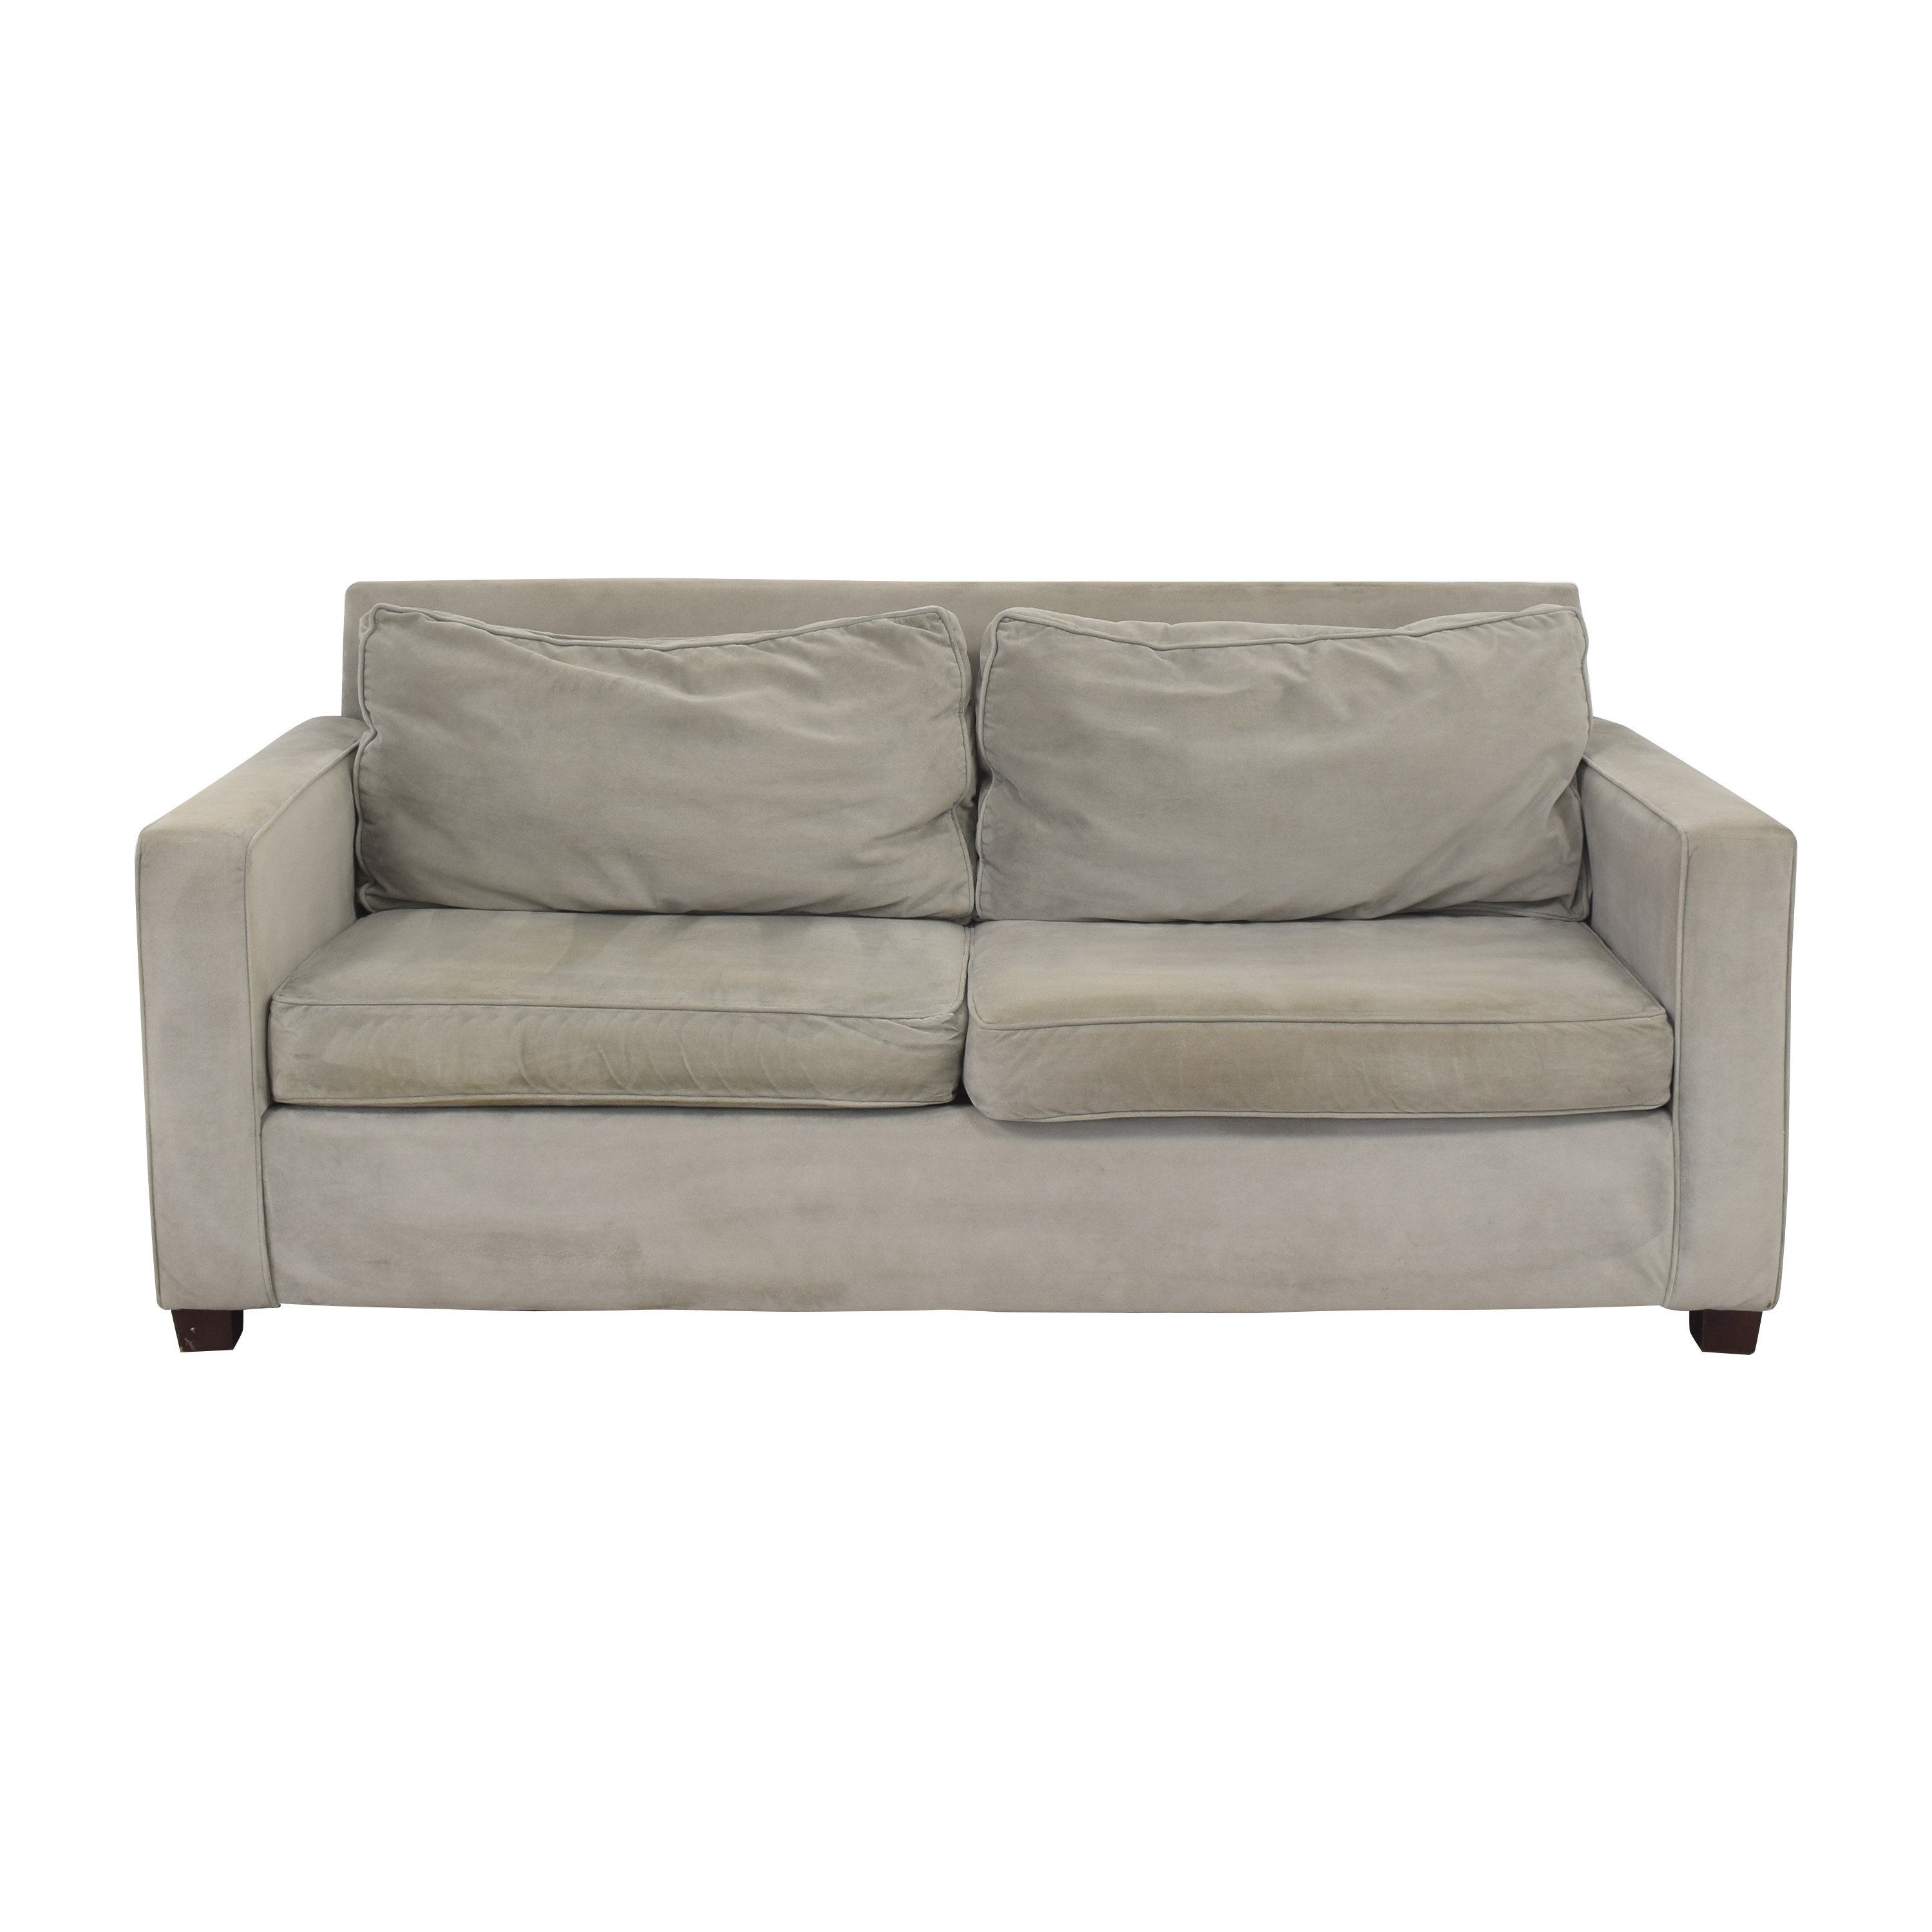 West Elm West Elm Modern Two Cushion Sofa